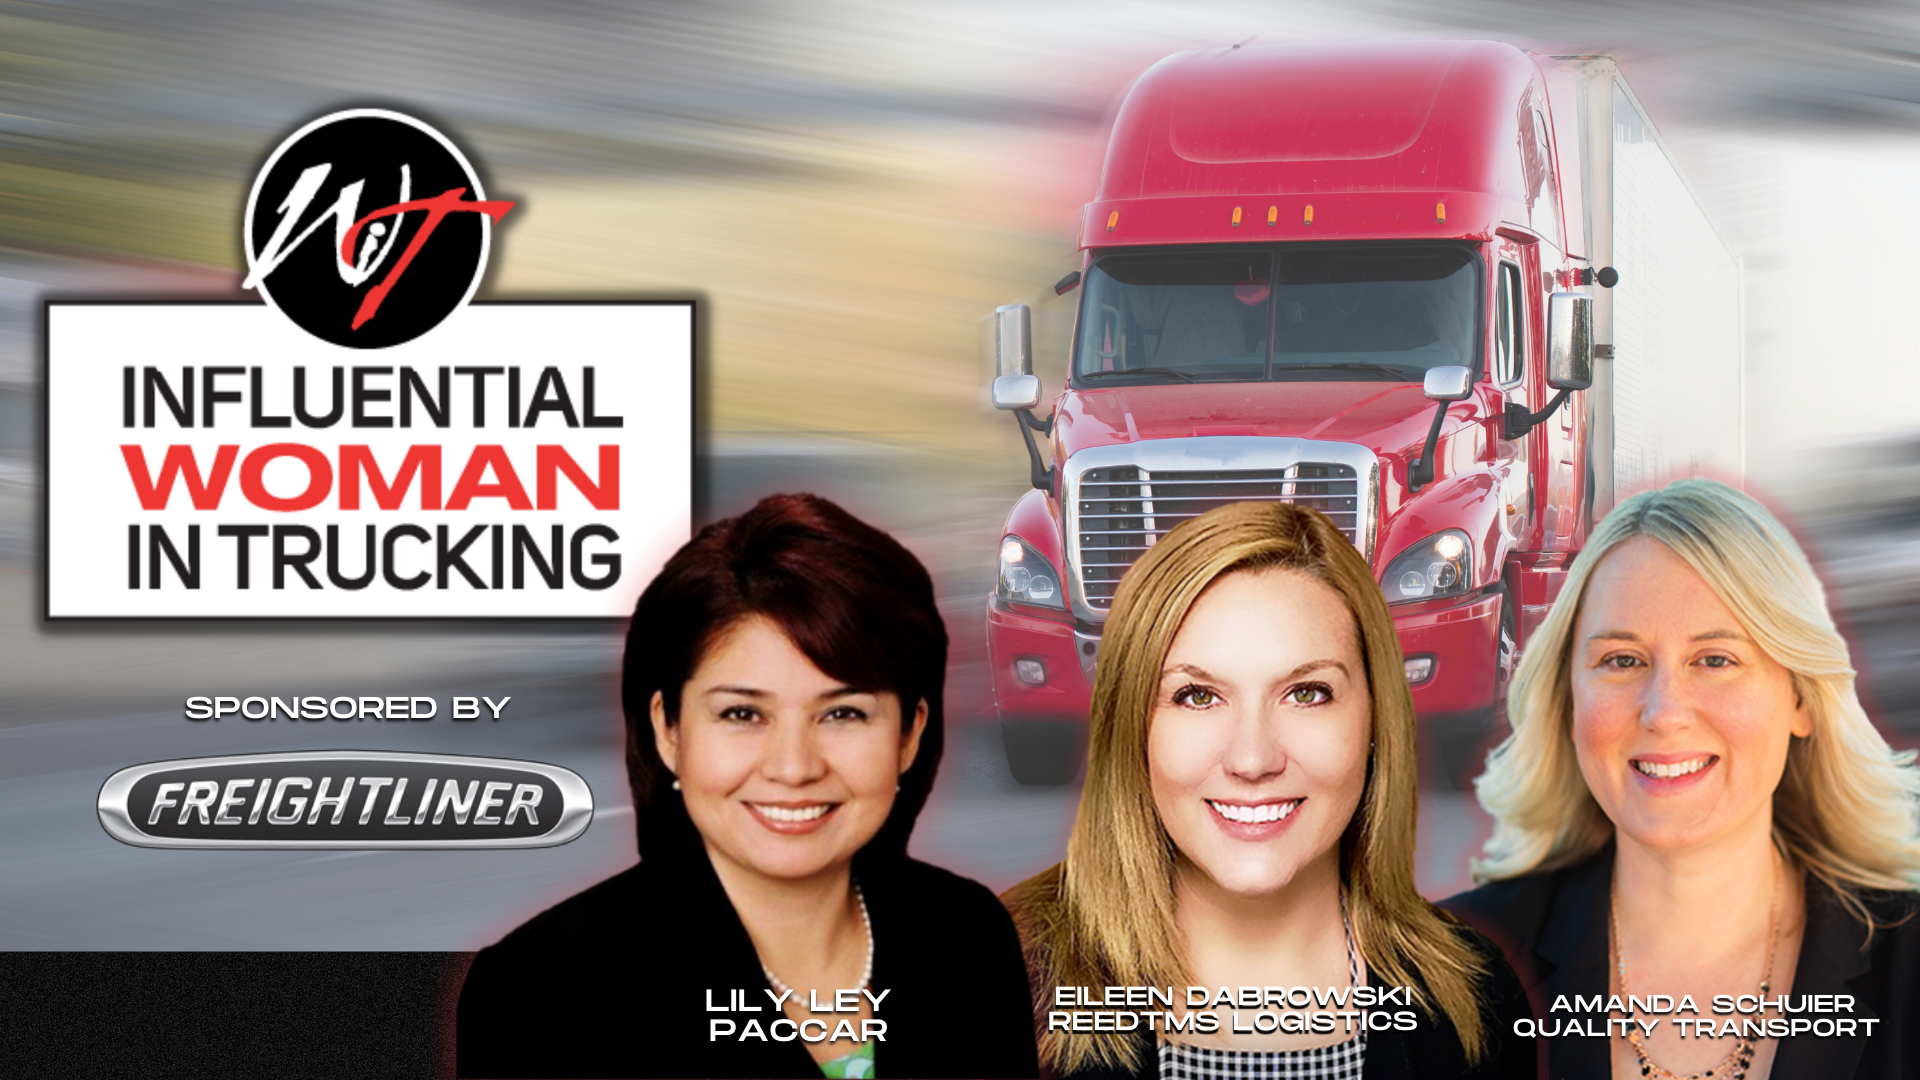 2021 Influential Woman in Trucking Finalists